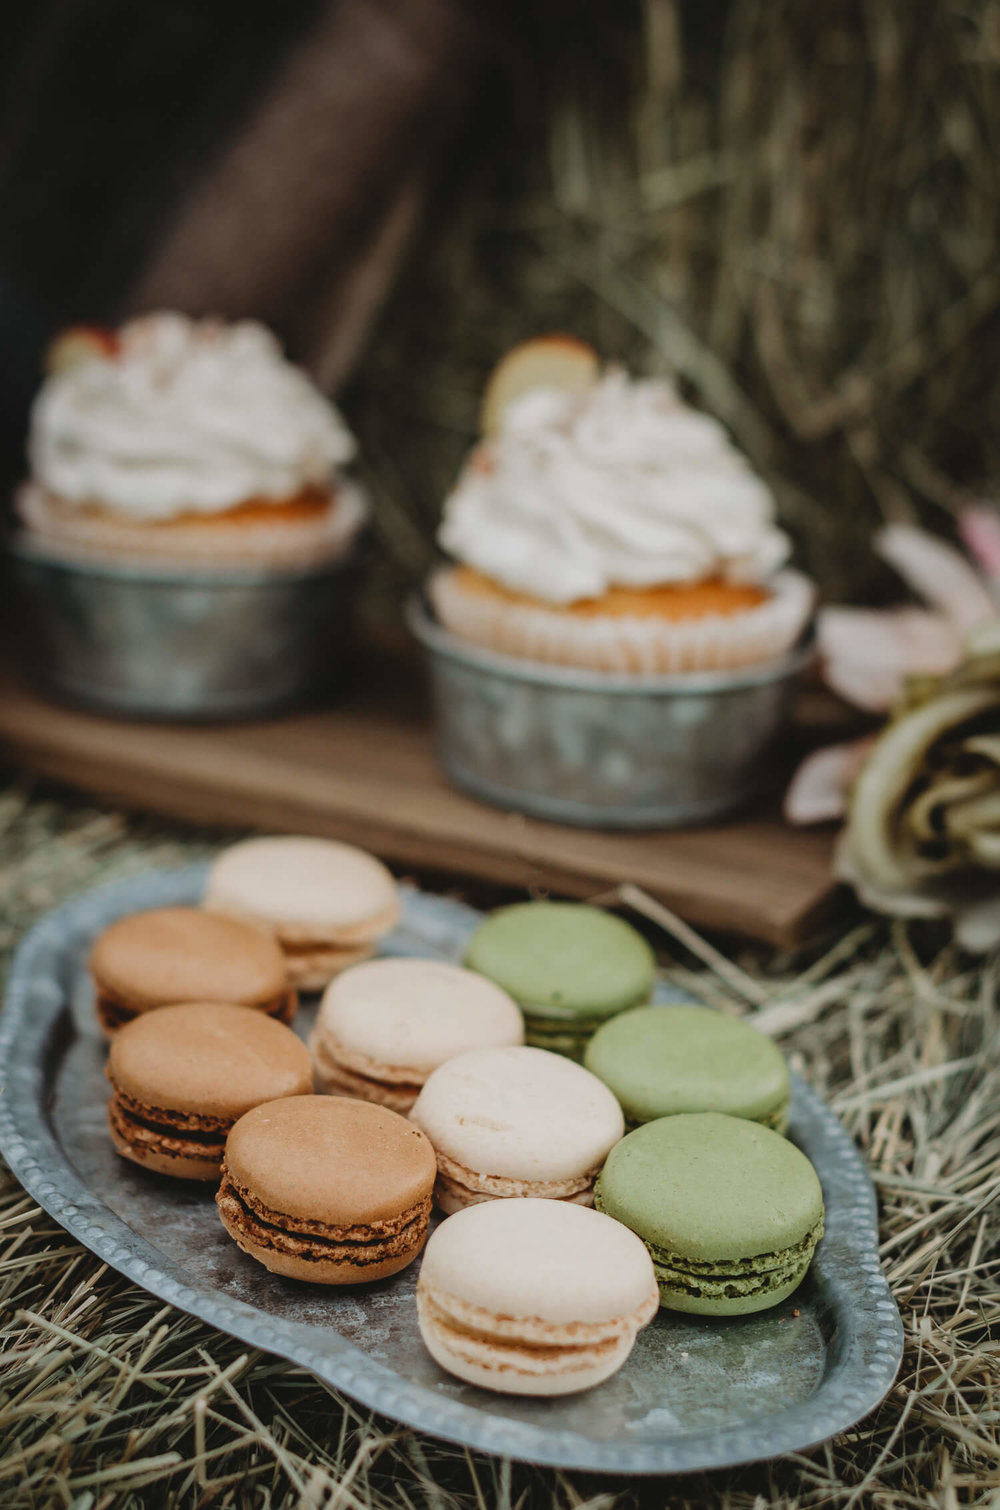 Fall inspired colors were the inspiration for these macarons at a rustic bridal shower. Click to see many more bridal shower ideas from this Fall in Love party theme. Created by party stylist Mint Event Design. #bridalshowers #bridalshowerideas #rusticwedding #rusticbridalshower #bridalshowerdecor #farmwedding #partyideas #fallbridalshower #pecanpies #bridaslshowerdessert #minidesserts